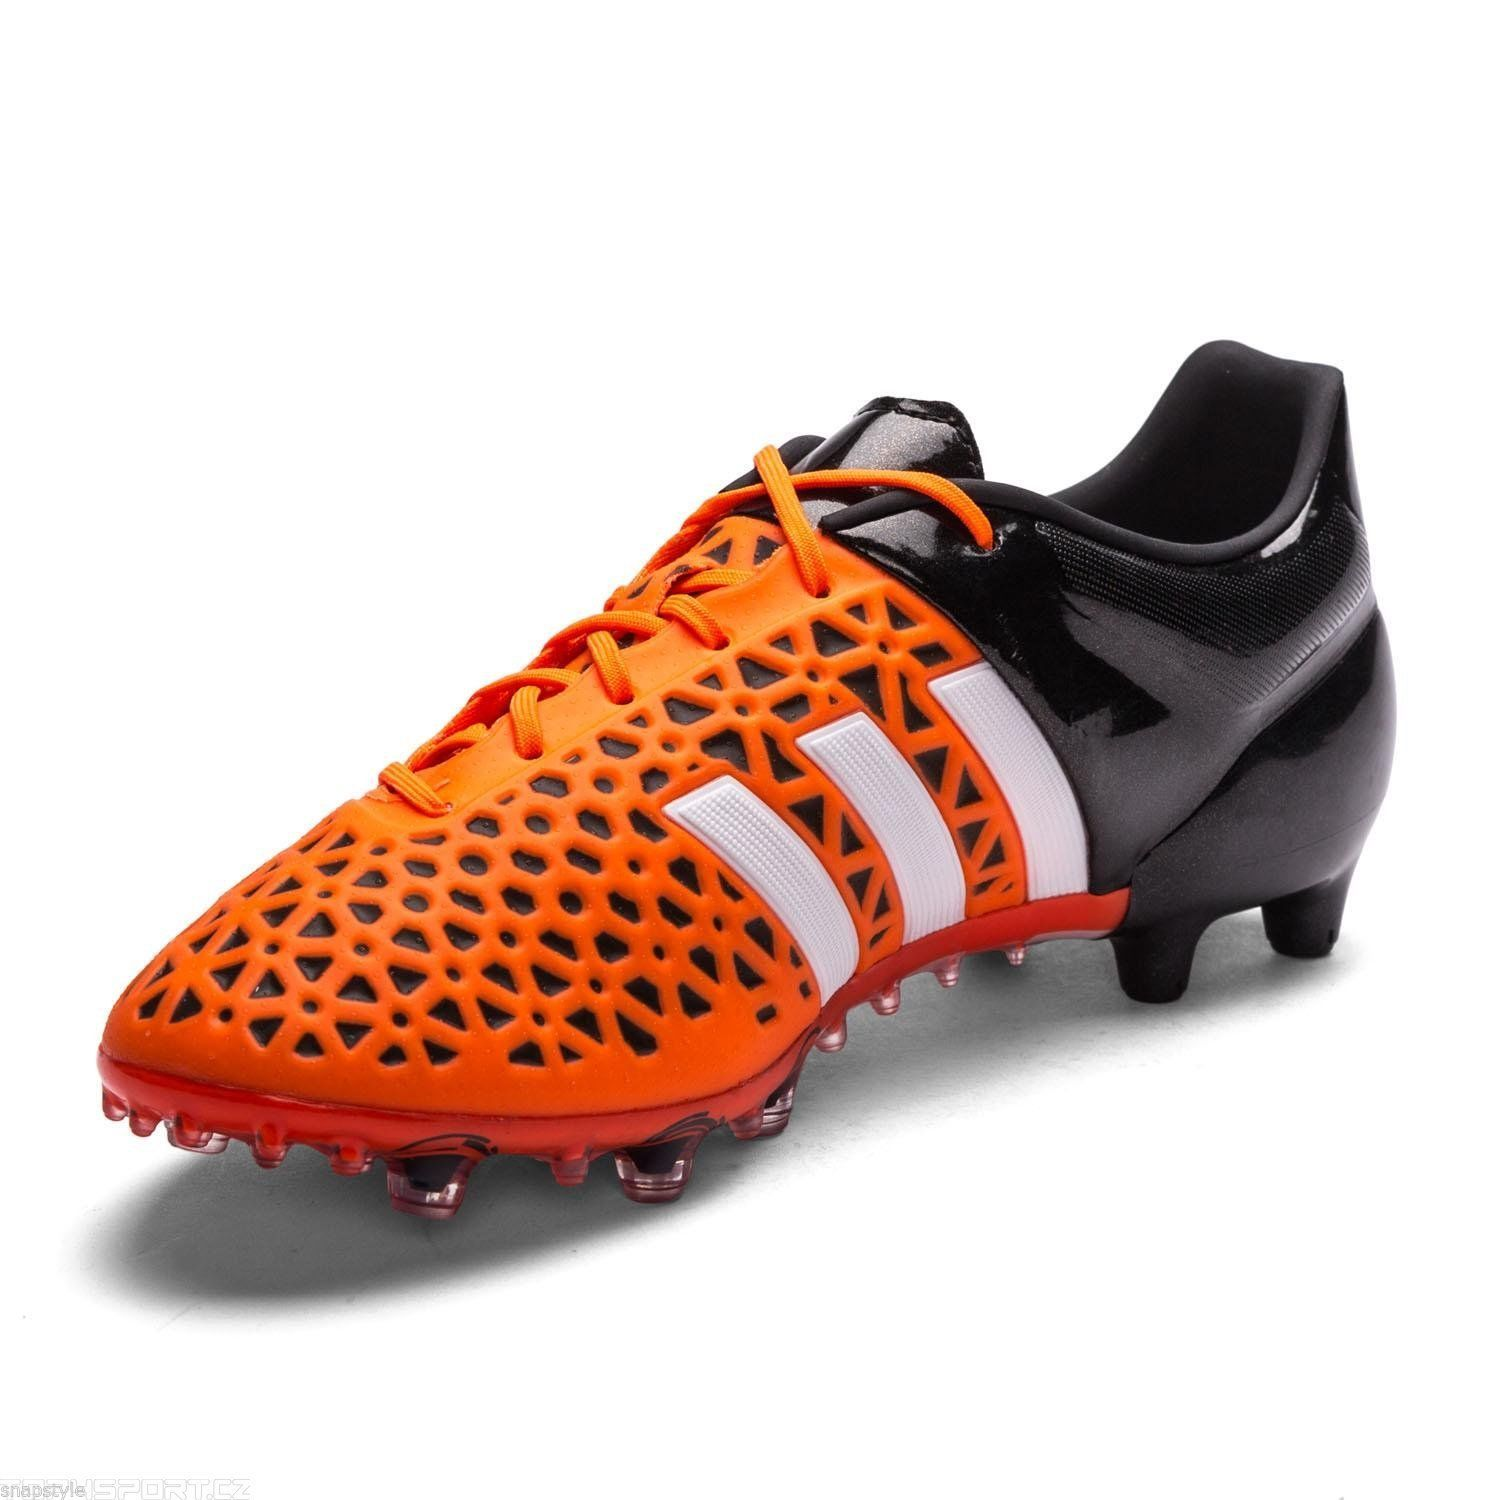 Adidas football cleats 9ine with images adidas